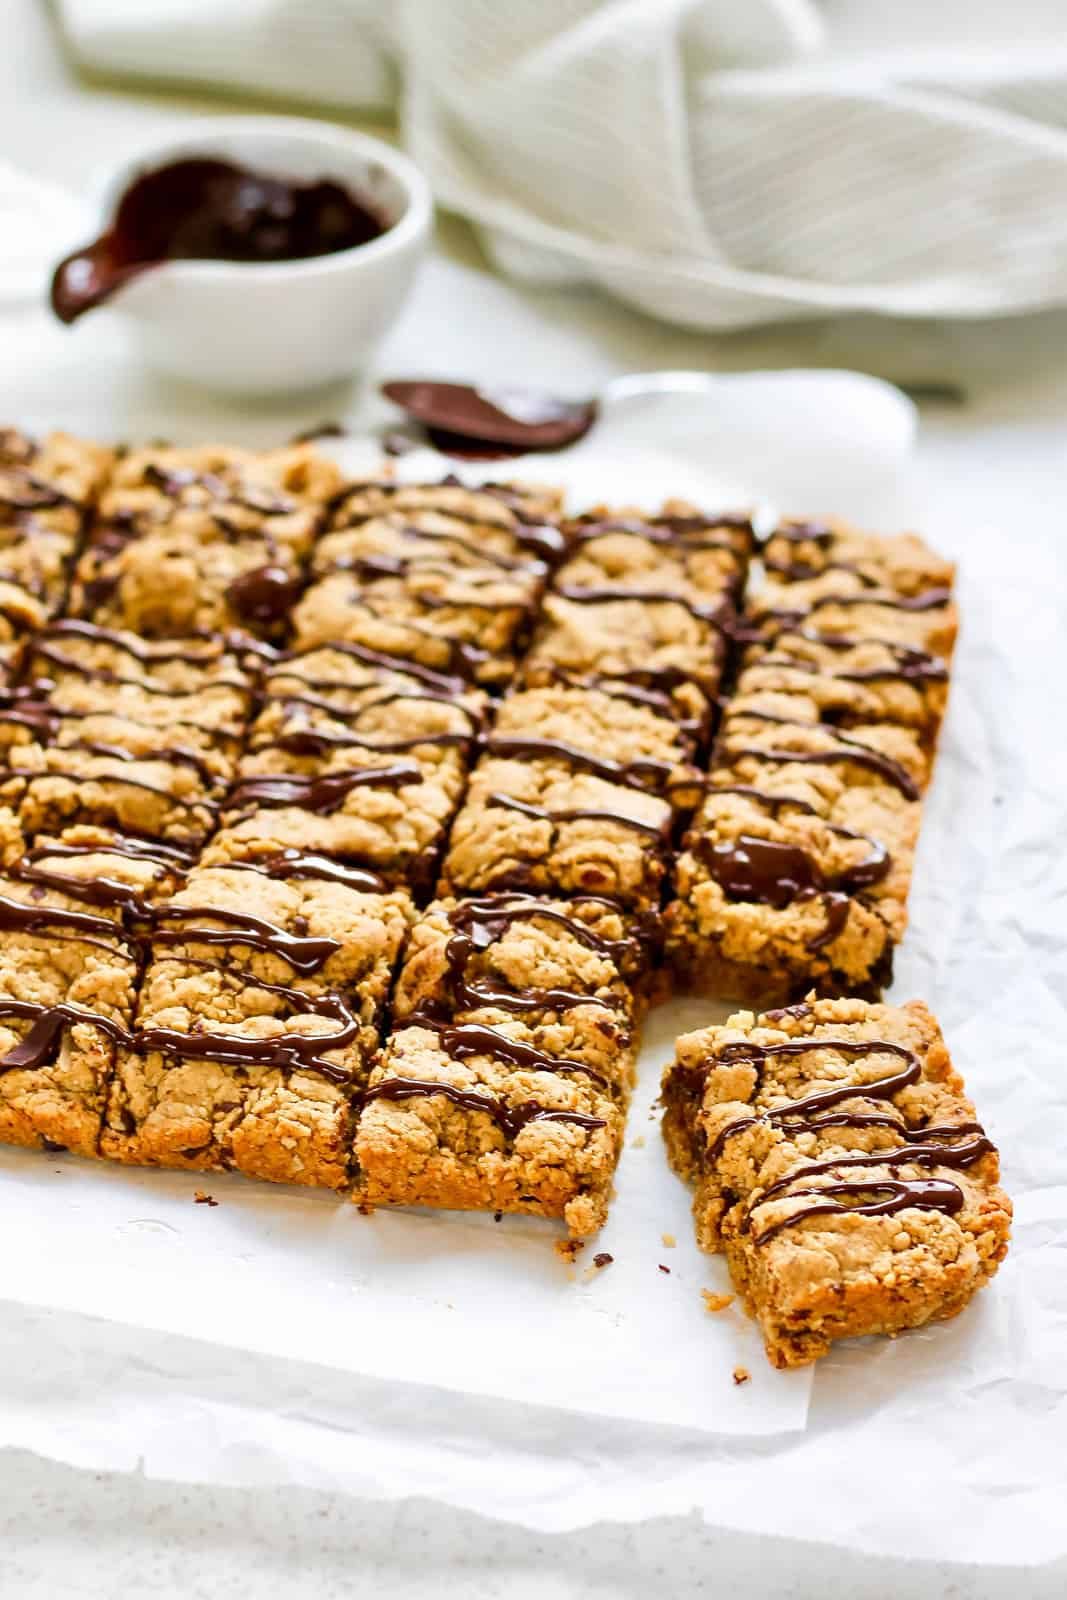 close up photo of peanut butter oat bars on a marble slab with one bar askew